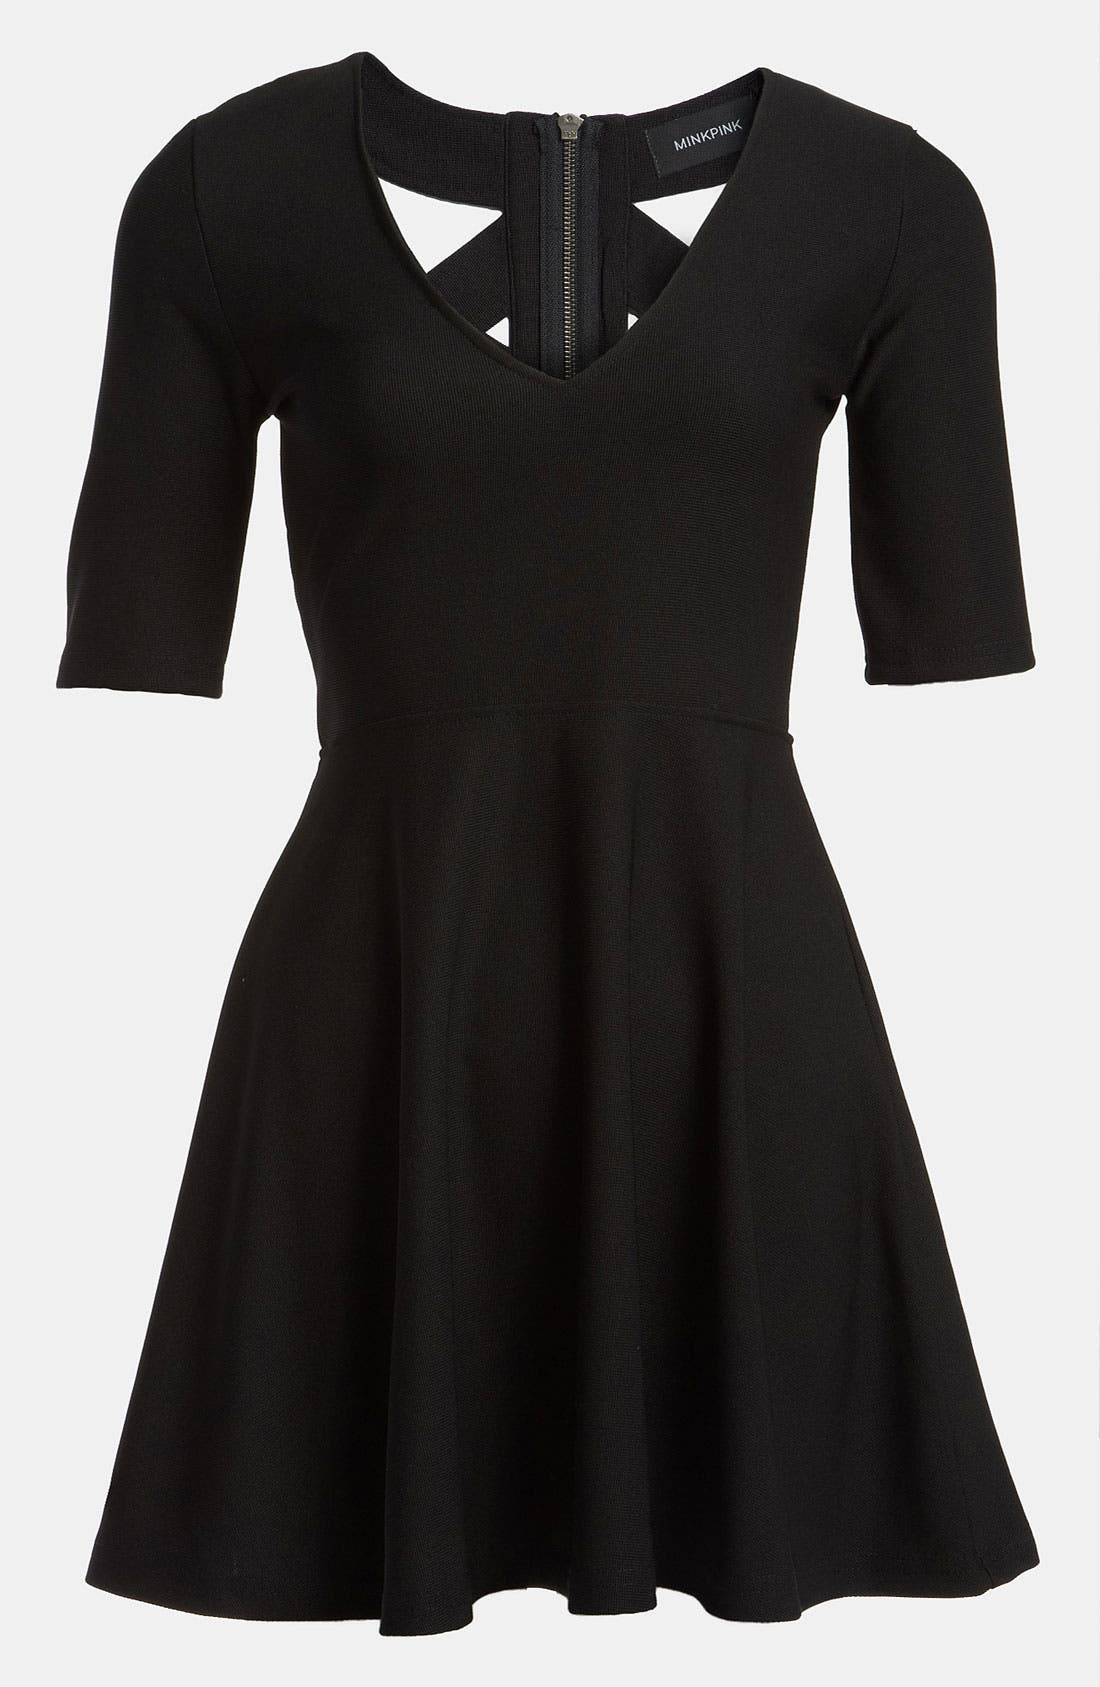 Main Image - MINKPINK 'All Coming Back' Dress